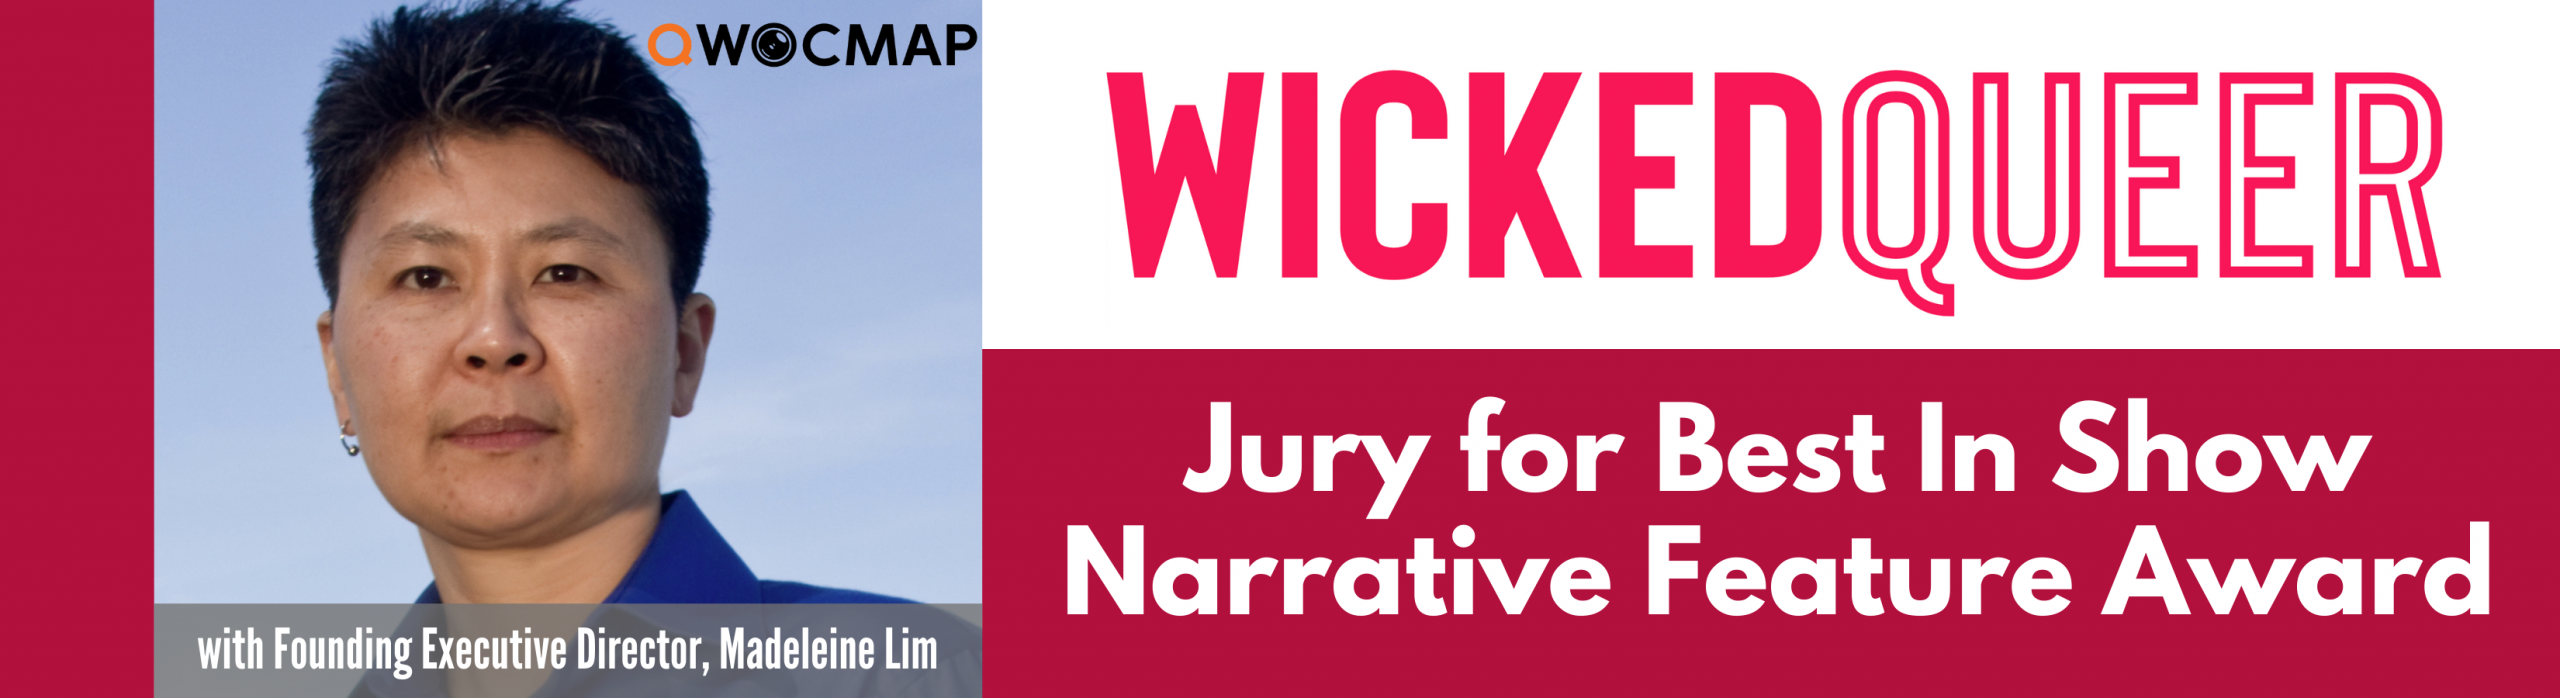 At the top, pink text reads Wicked Queer. Below on a magenta background, white text reads Jury for Best in Show Narrative Feature Award. On the left is a headshot of an Asian person with light brown skin, short black and gray hair, and brown eyes, wearing a bright blue collared shirt and one earring. On the photo, the QWOCMAP logo is in the top right corner and the caption, which is white text on a gray transparent background, reads With Founding Executive Director Madeleine Lim.